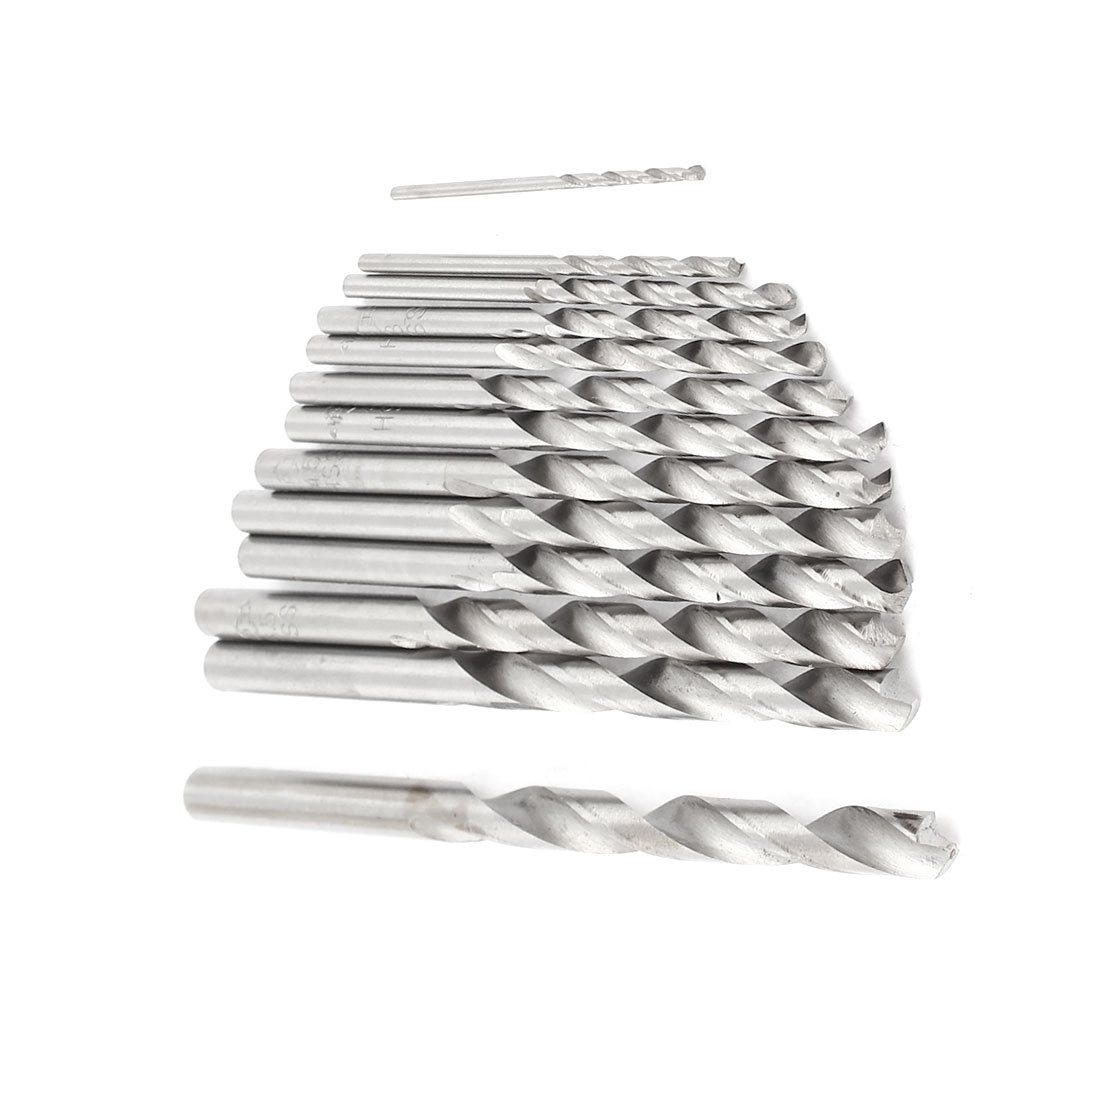 13 in 1 Straight Shank HSS 1.5mm to 6.5mm Twist Drill Bits Set